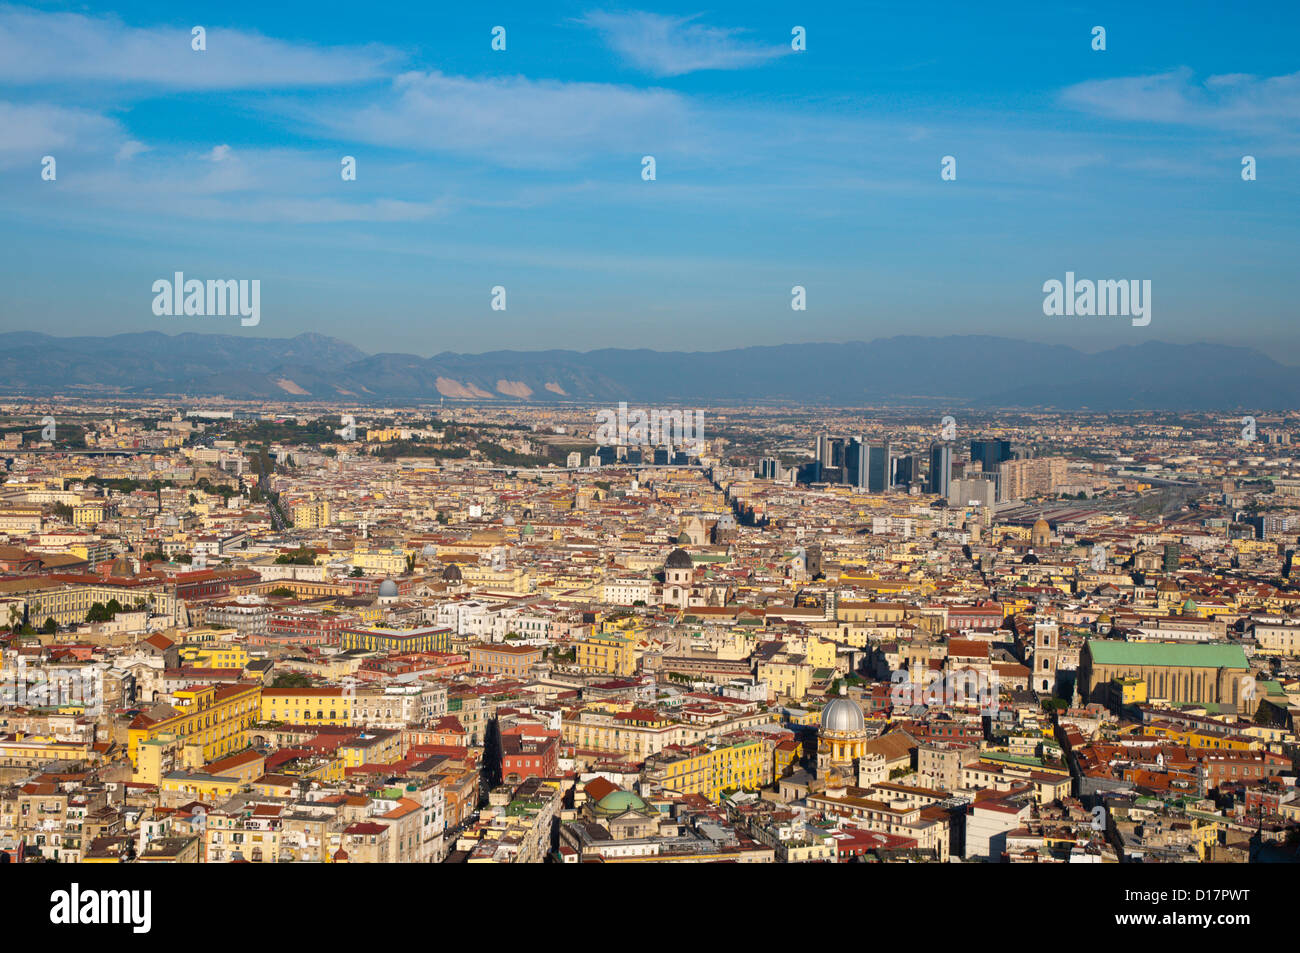 Centro storico and other parts of central Naples seen from Largo San Martino square Vomero district Naples Italy - Stock Image